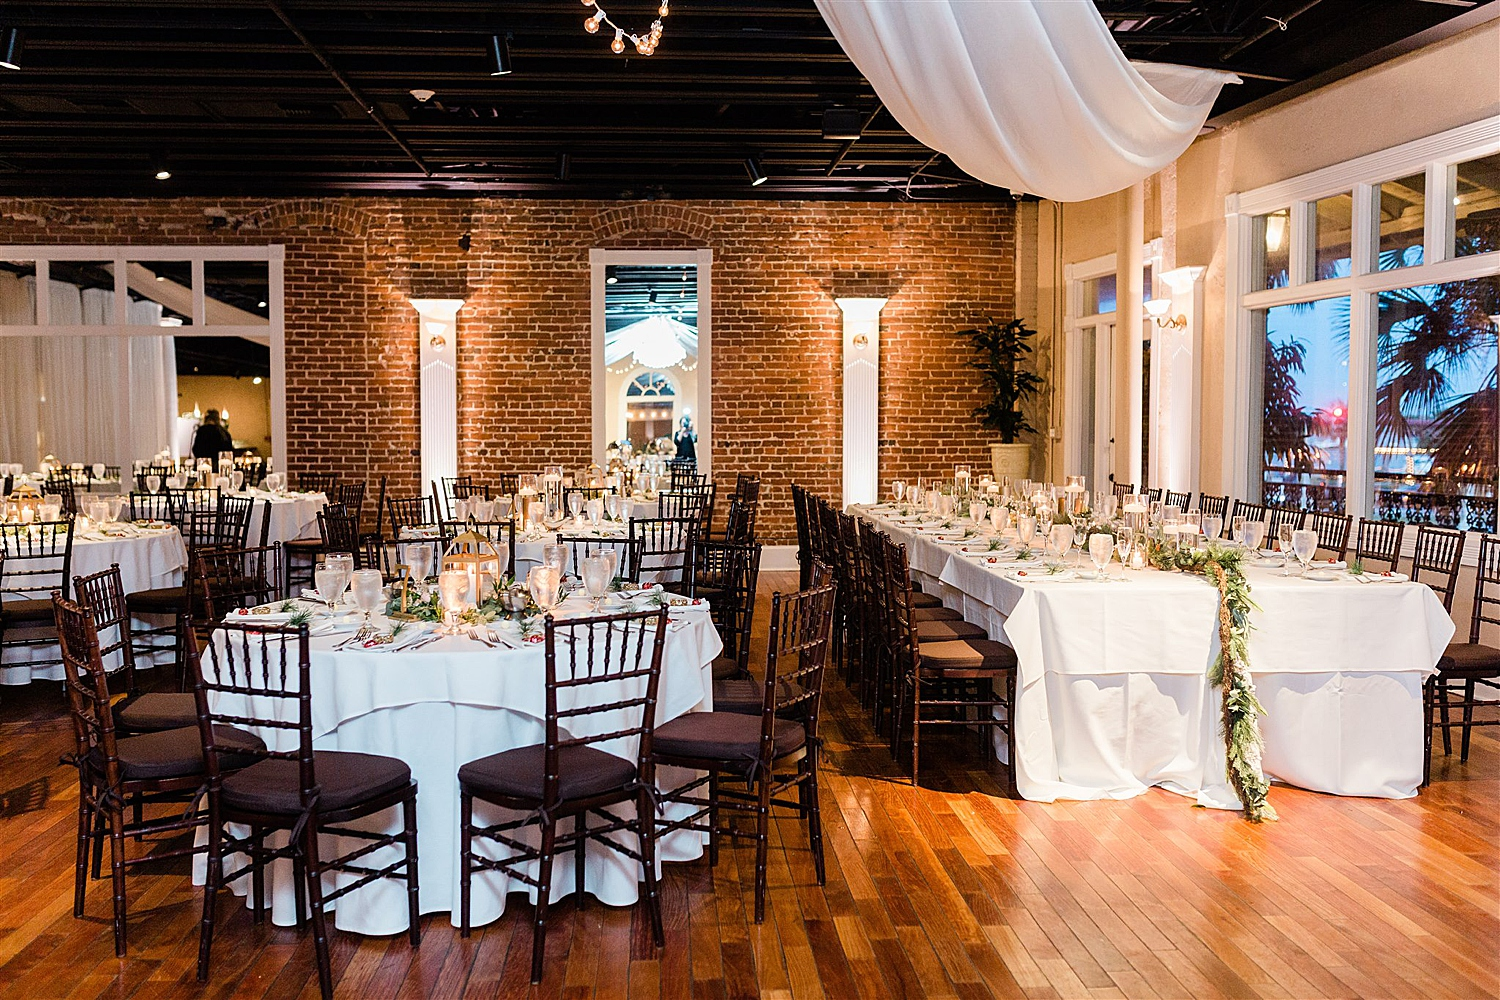 The White Room Wedding Venue set up for the perfect christmas reception